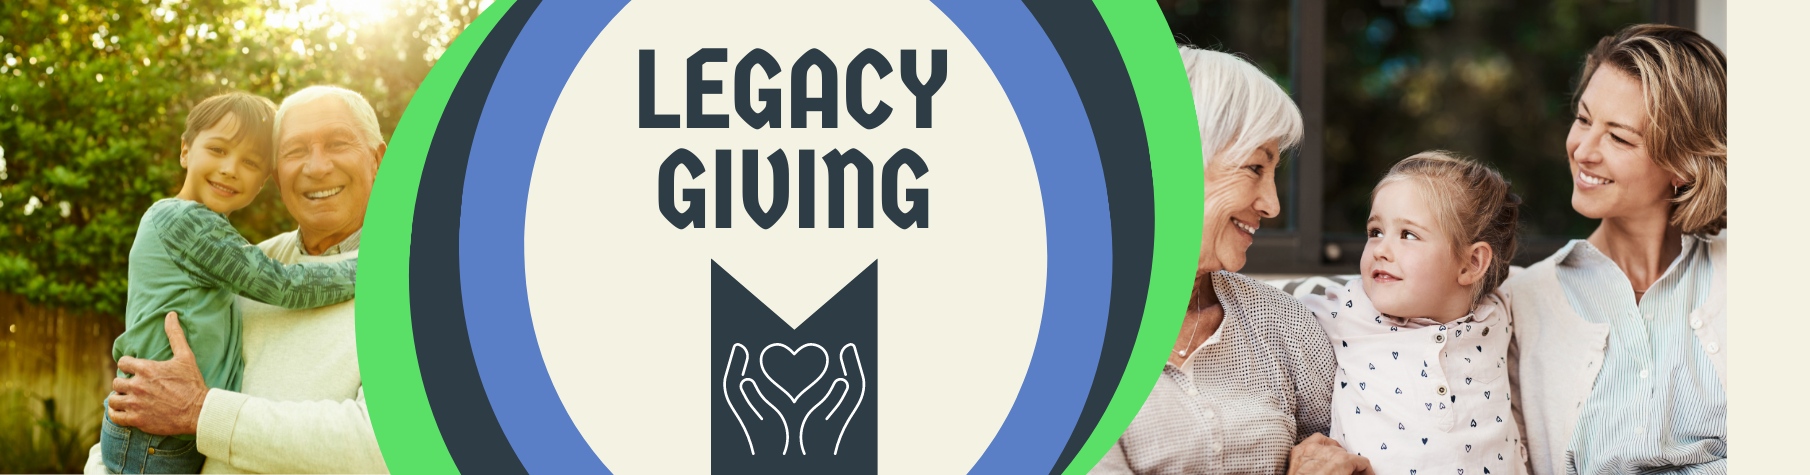 YOUR LASTING LEGACY: SECURING THE FUTURE WELL-BEING OF OUR COMMUNITY